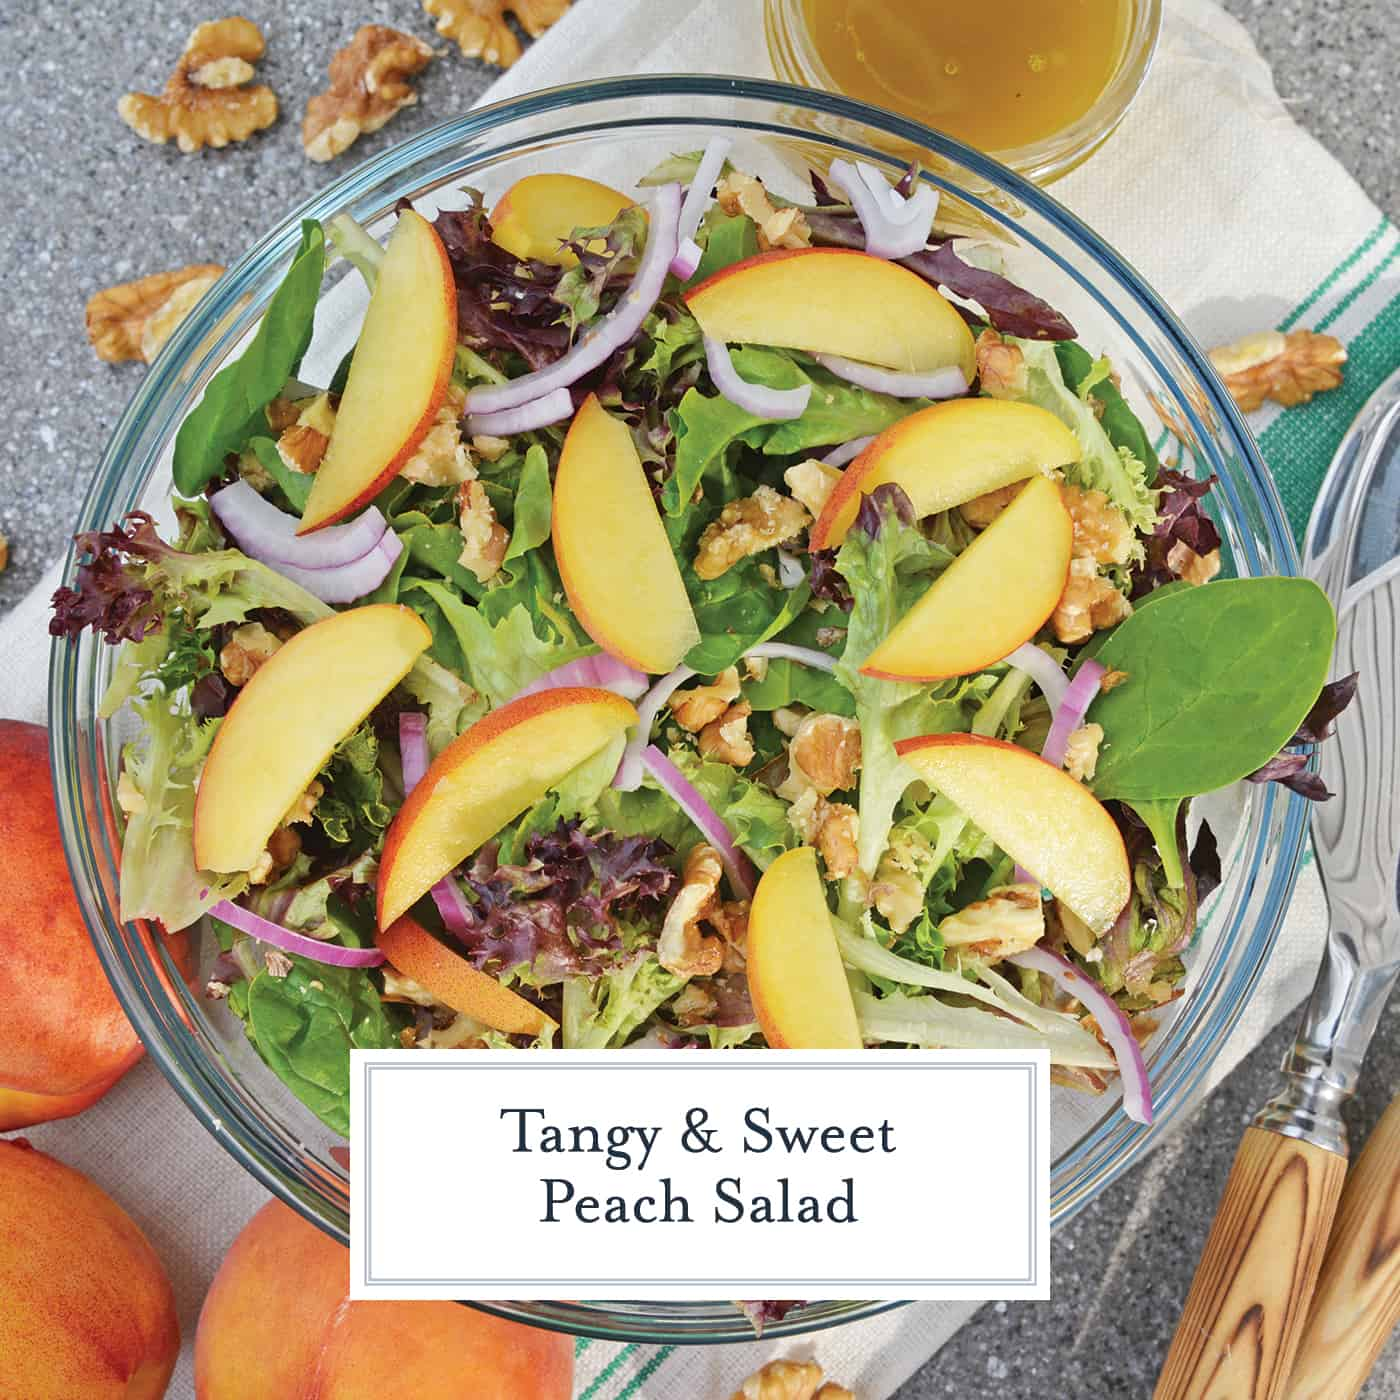 Peach Salad is a scrumptious summer salad filled with delicious peaches, gorgonzola cheese, shallots, candied walnuts and a tangy peach dressing. The perfect summer salad! #peachsalad #summersalads www.savoryexperiments.com